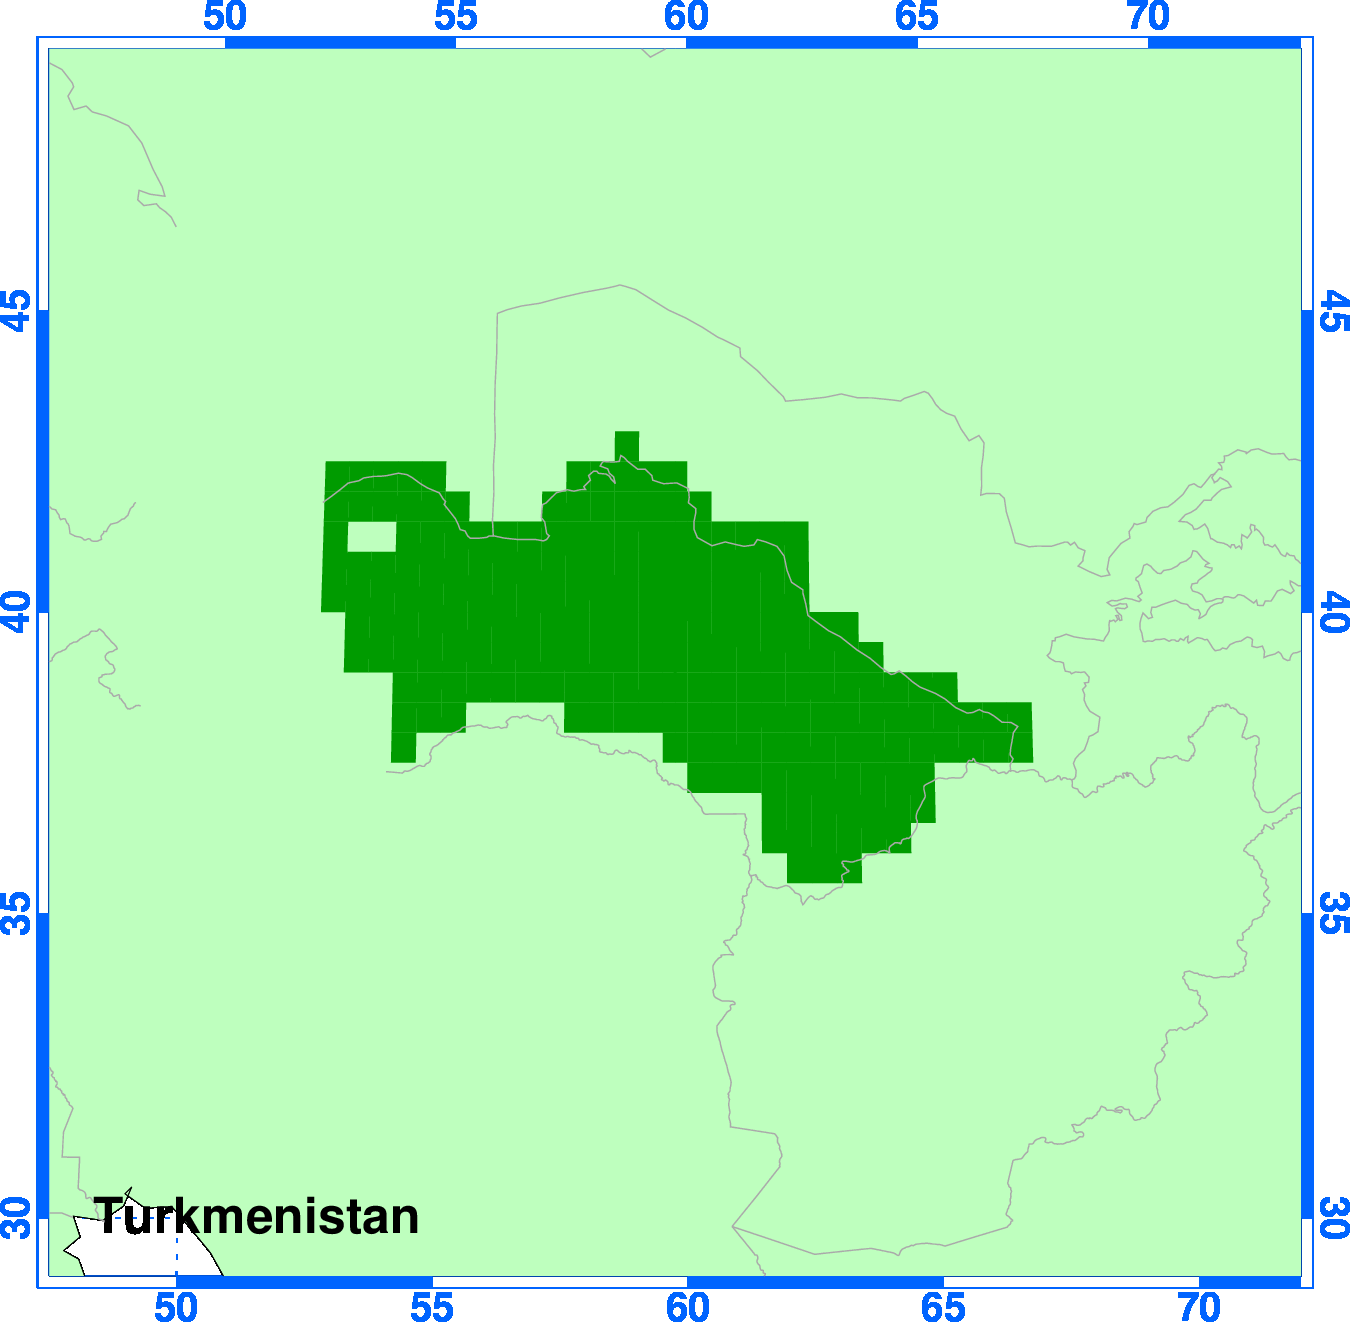 ClimGen Turkmenistan climate projections observations